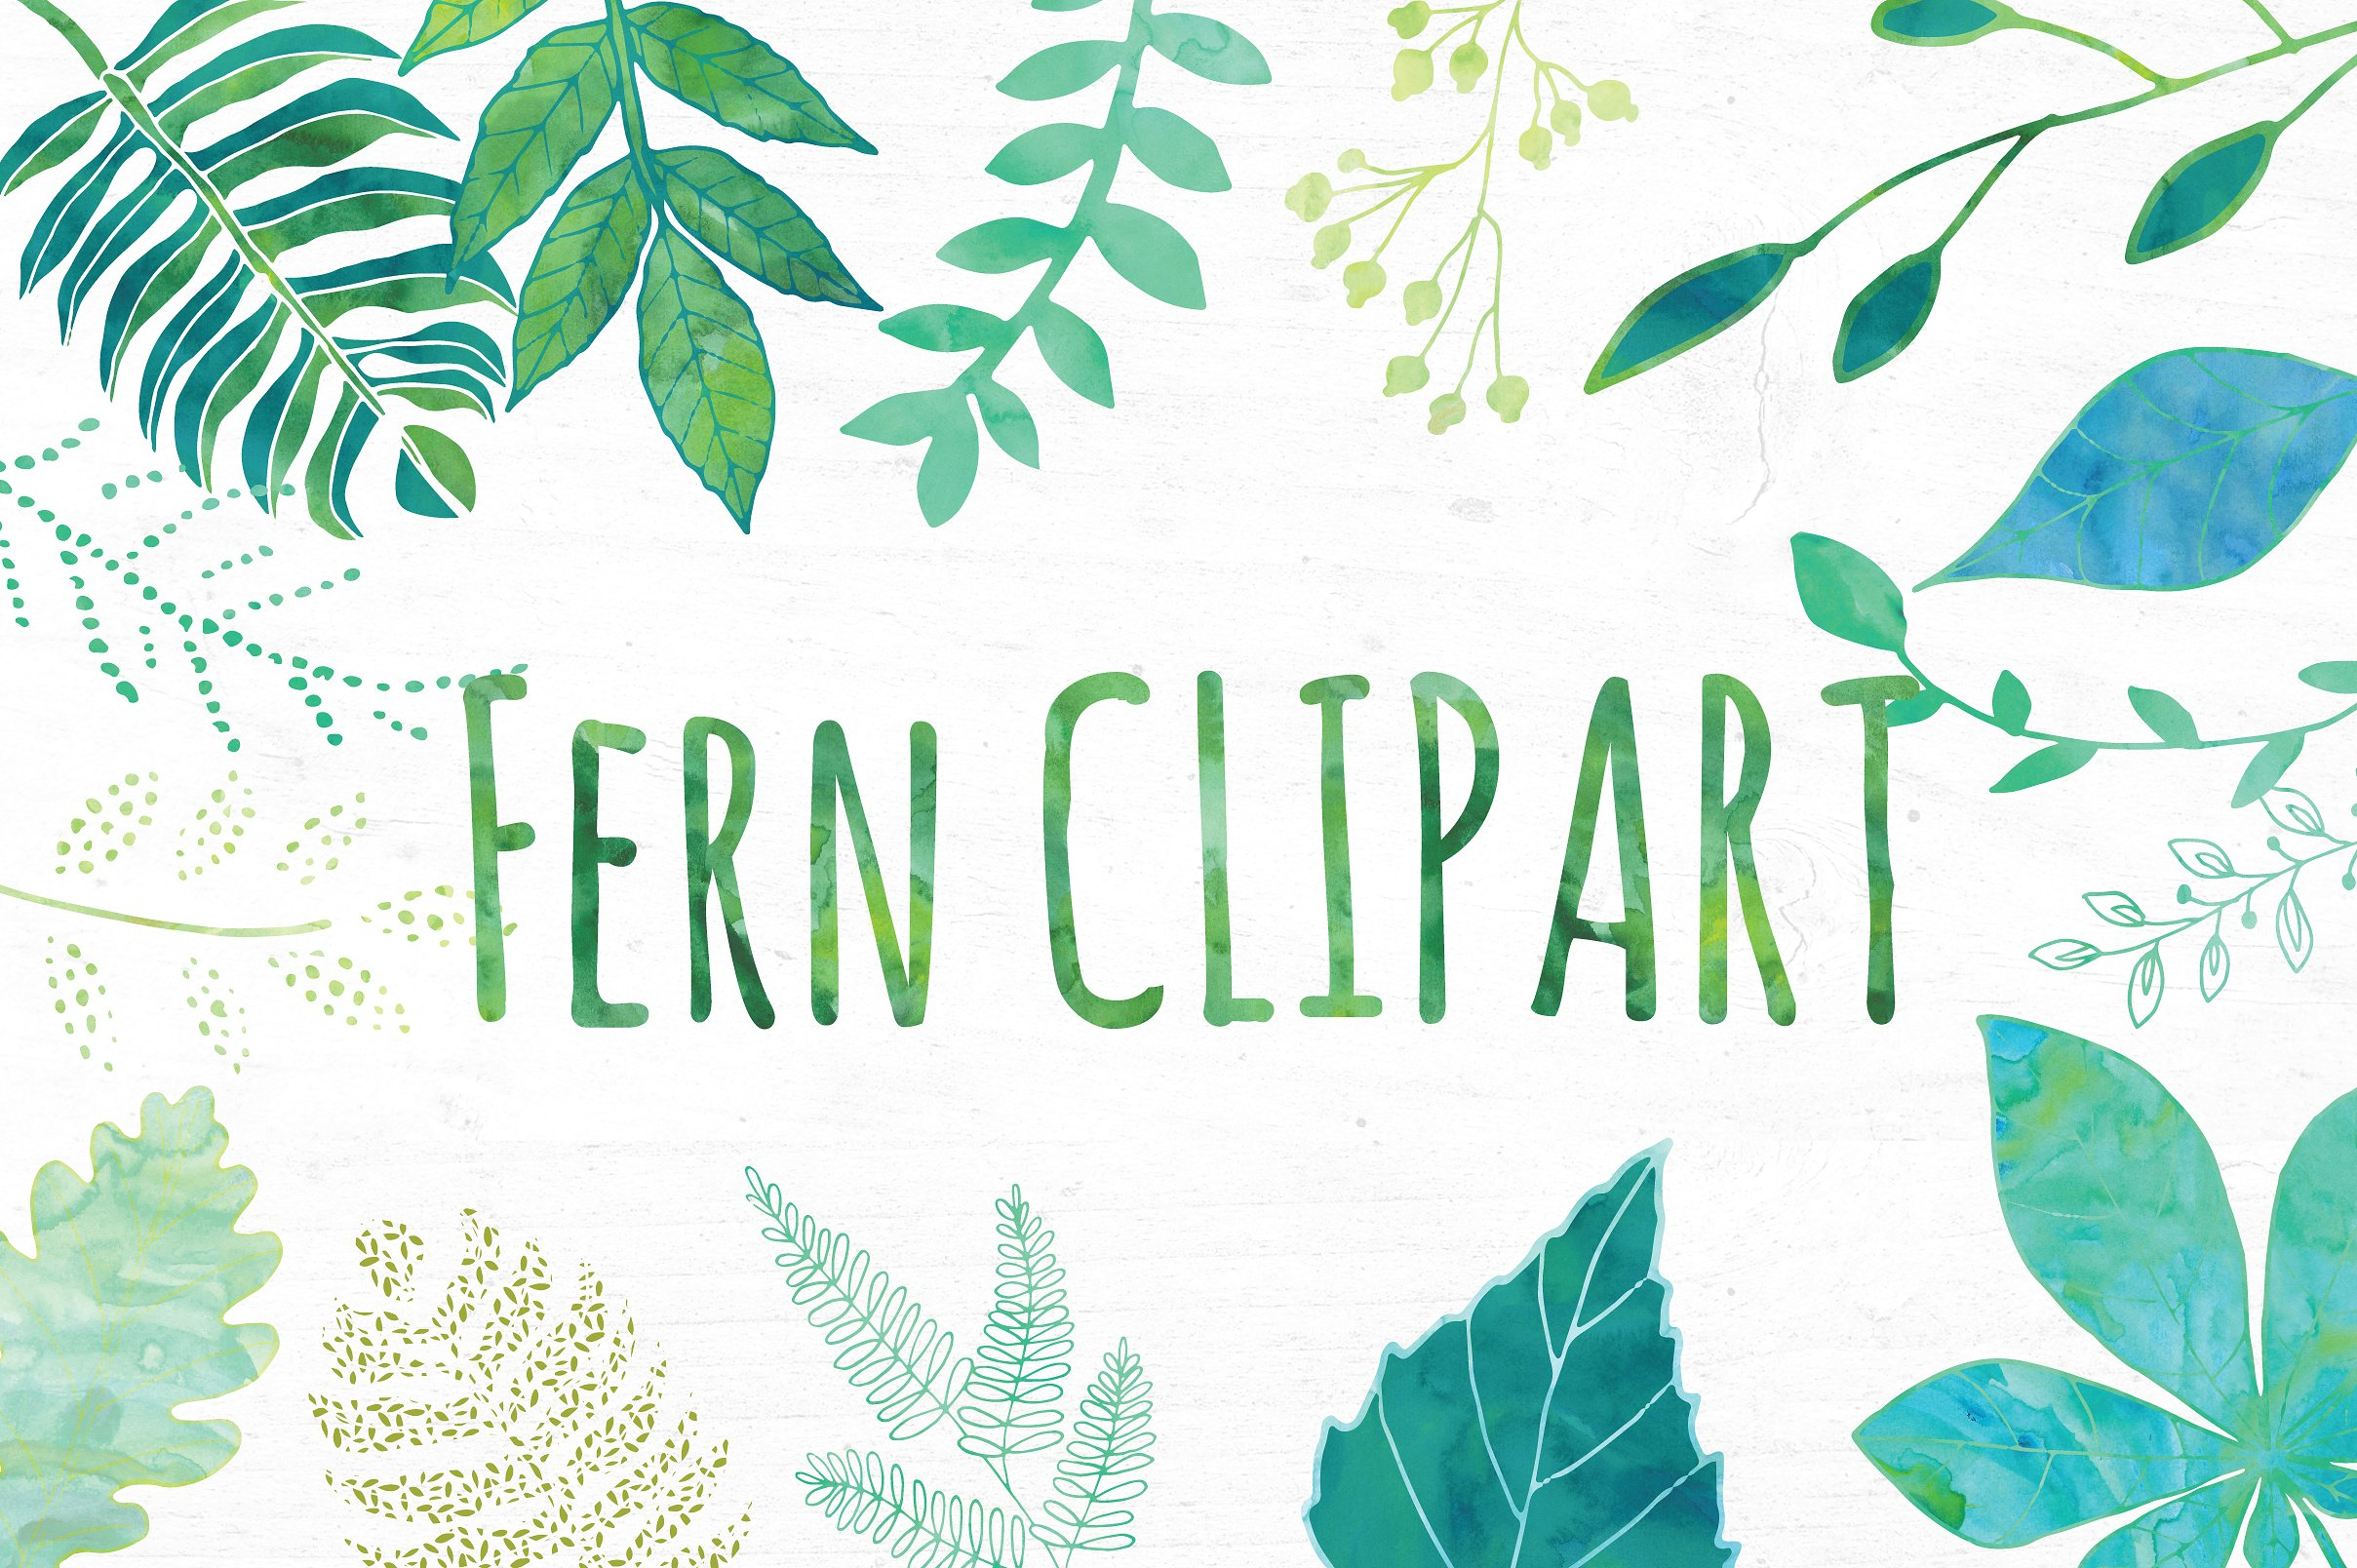 Fern clipart #1, Download drawings